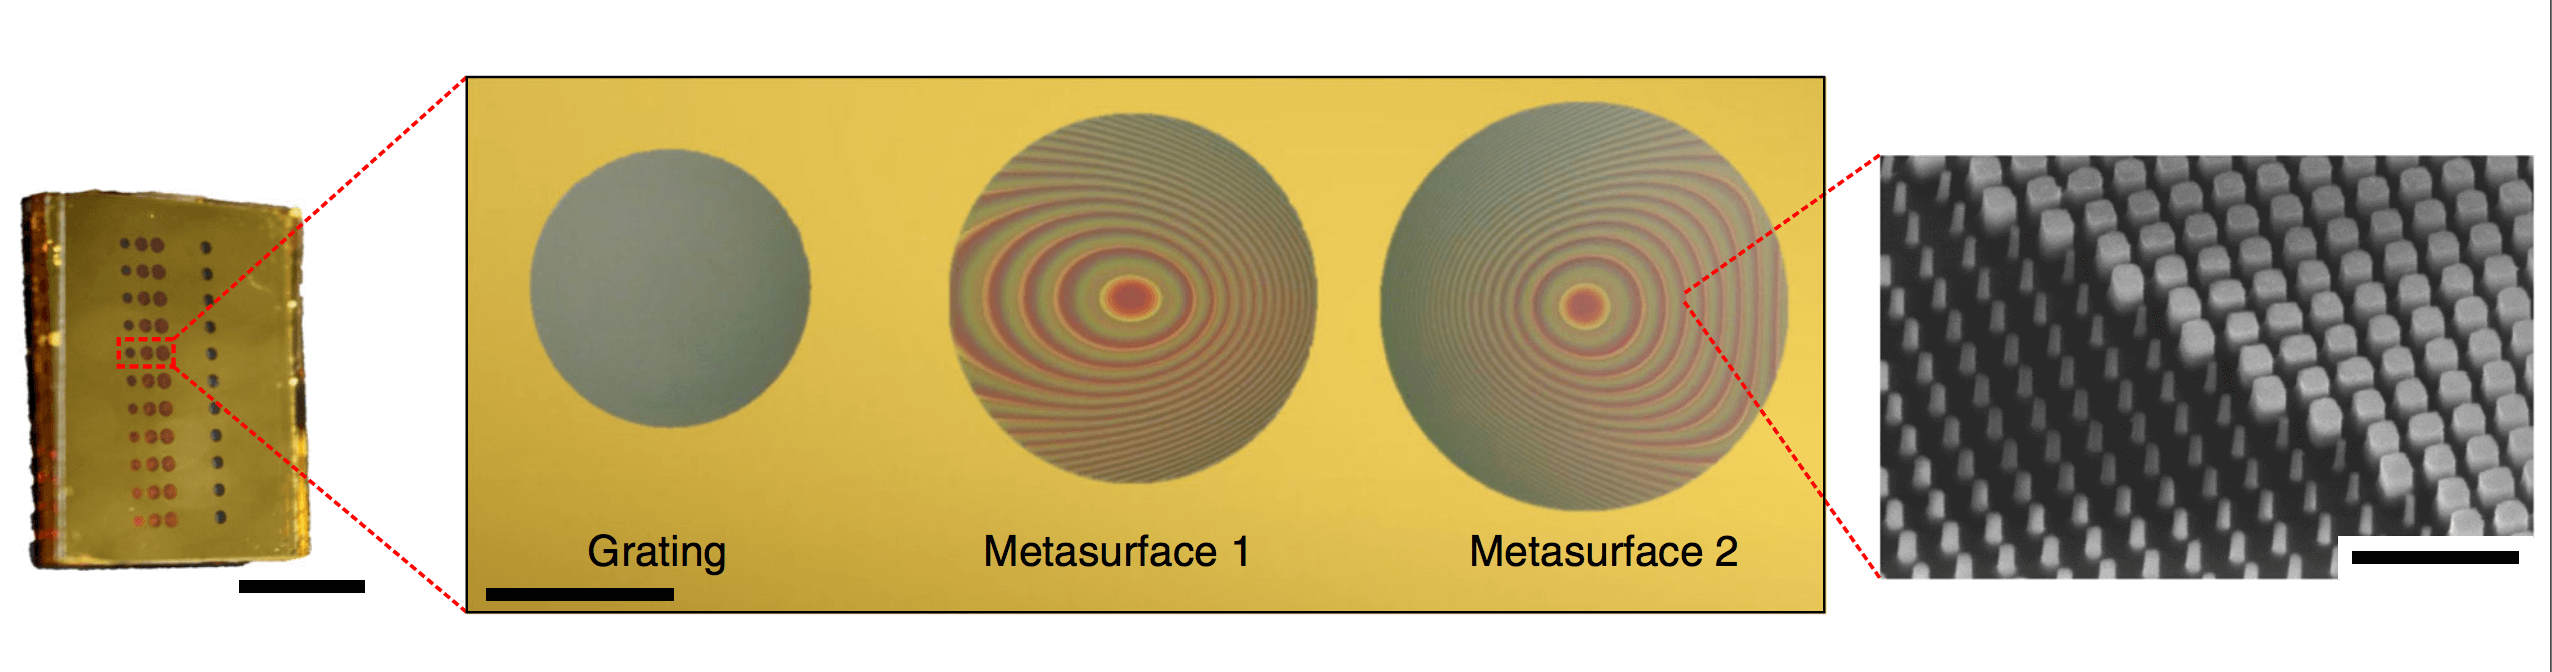 Image: An optical microscope image of the fabricated device and metasurfaces before deposition of the second gold layer.